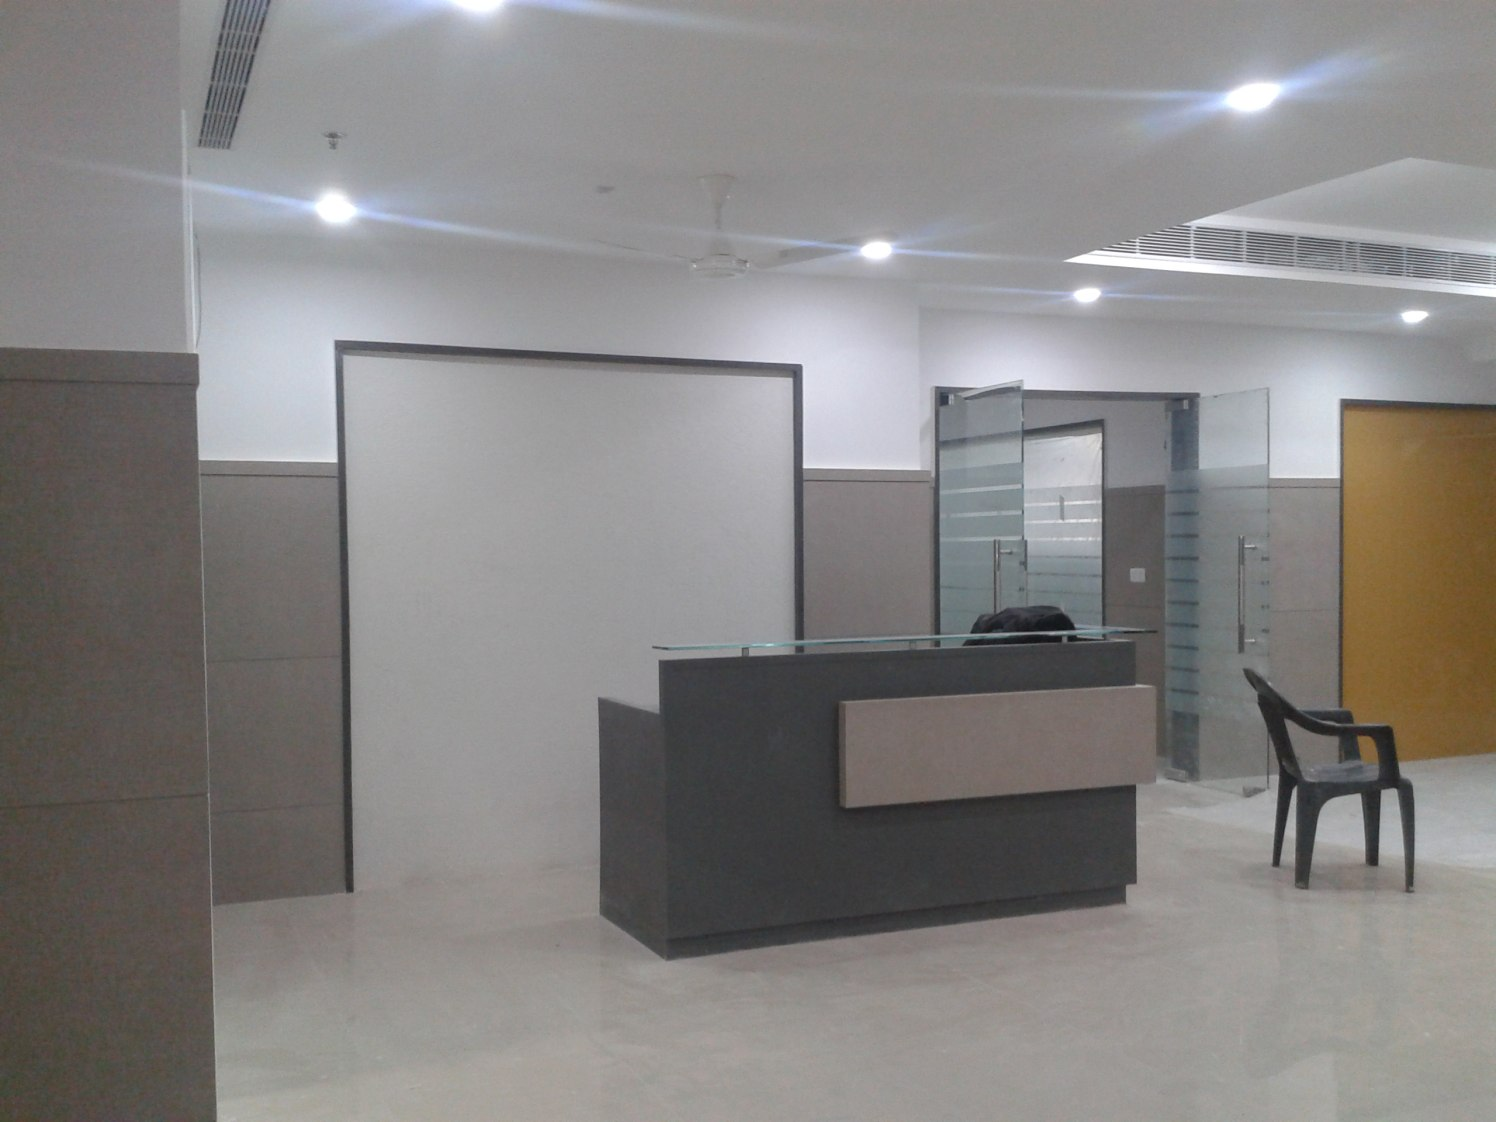 Cellular office space by rohini yadav Modern | Interior Design Photos & Ideas